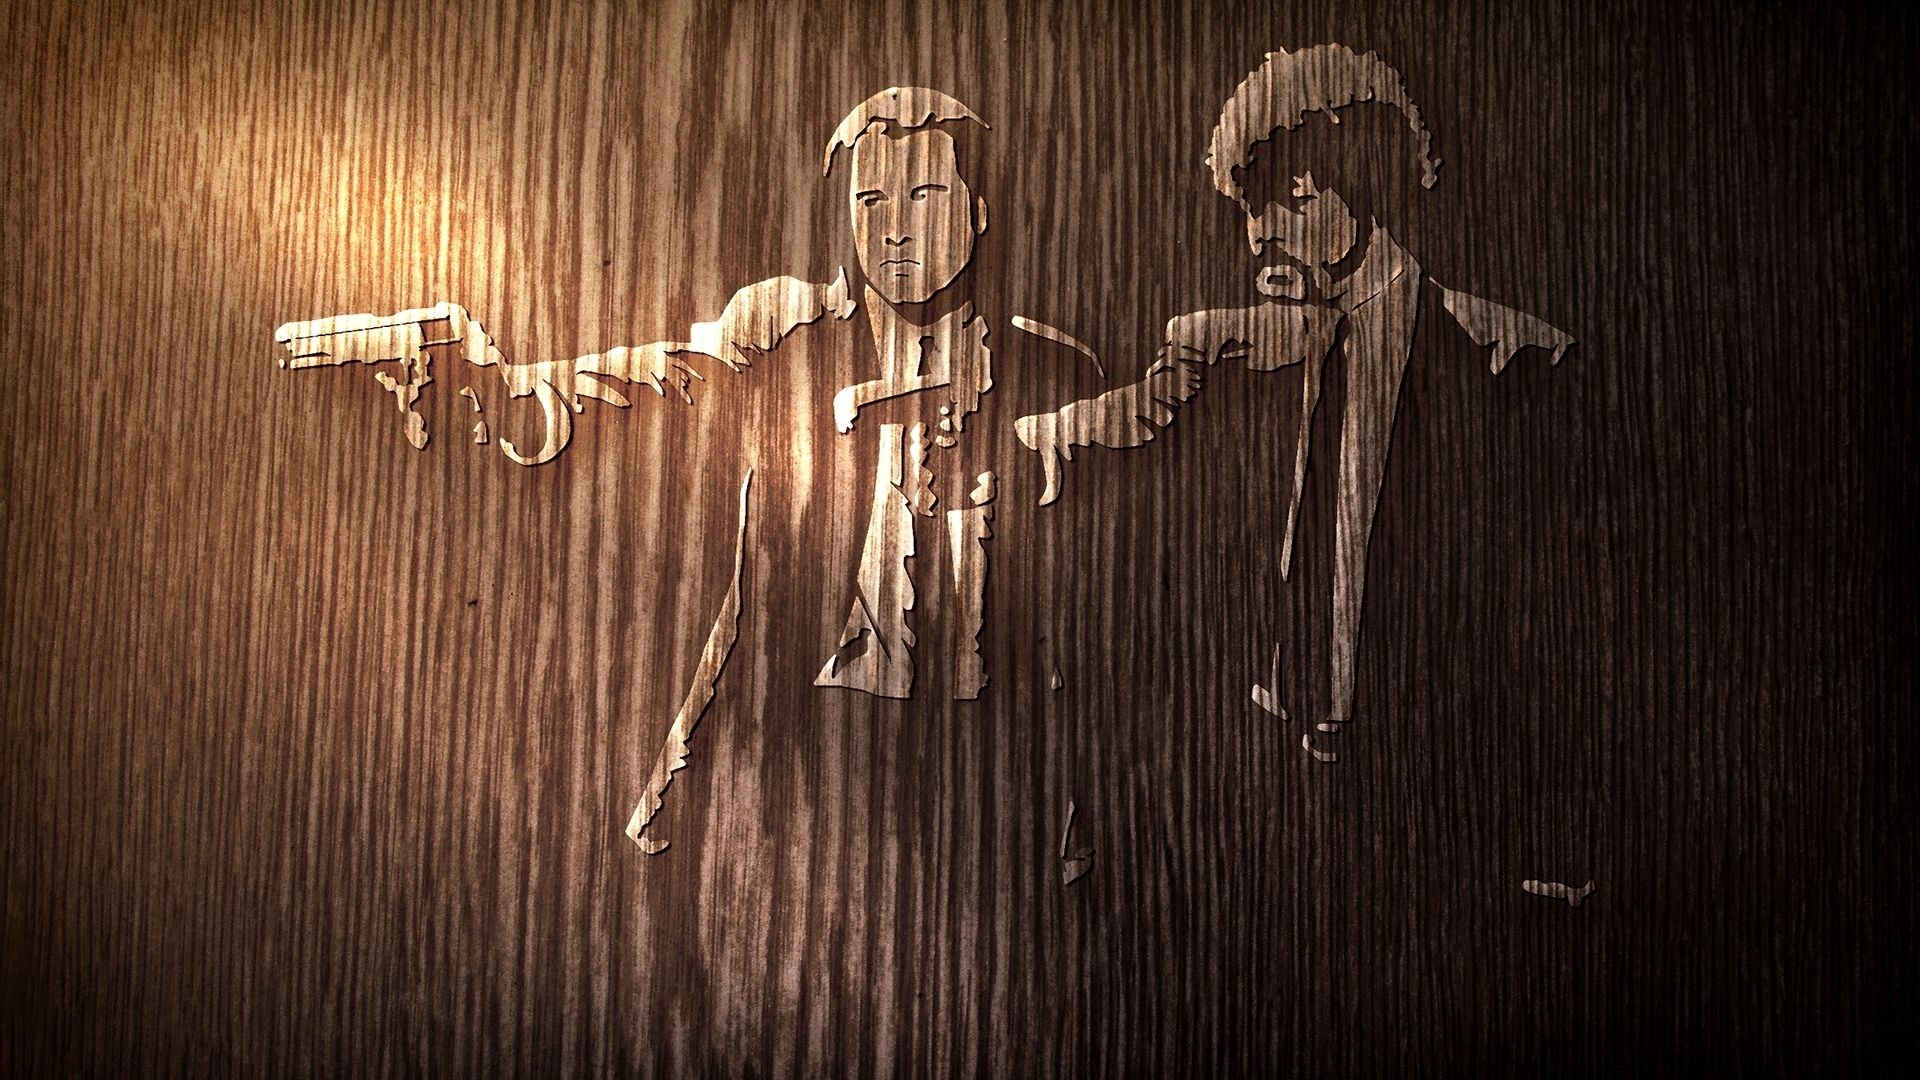 Pulp Fiction Wallpaper ·① Download Free Full HD Wallpapers